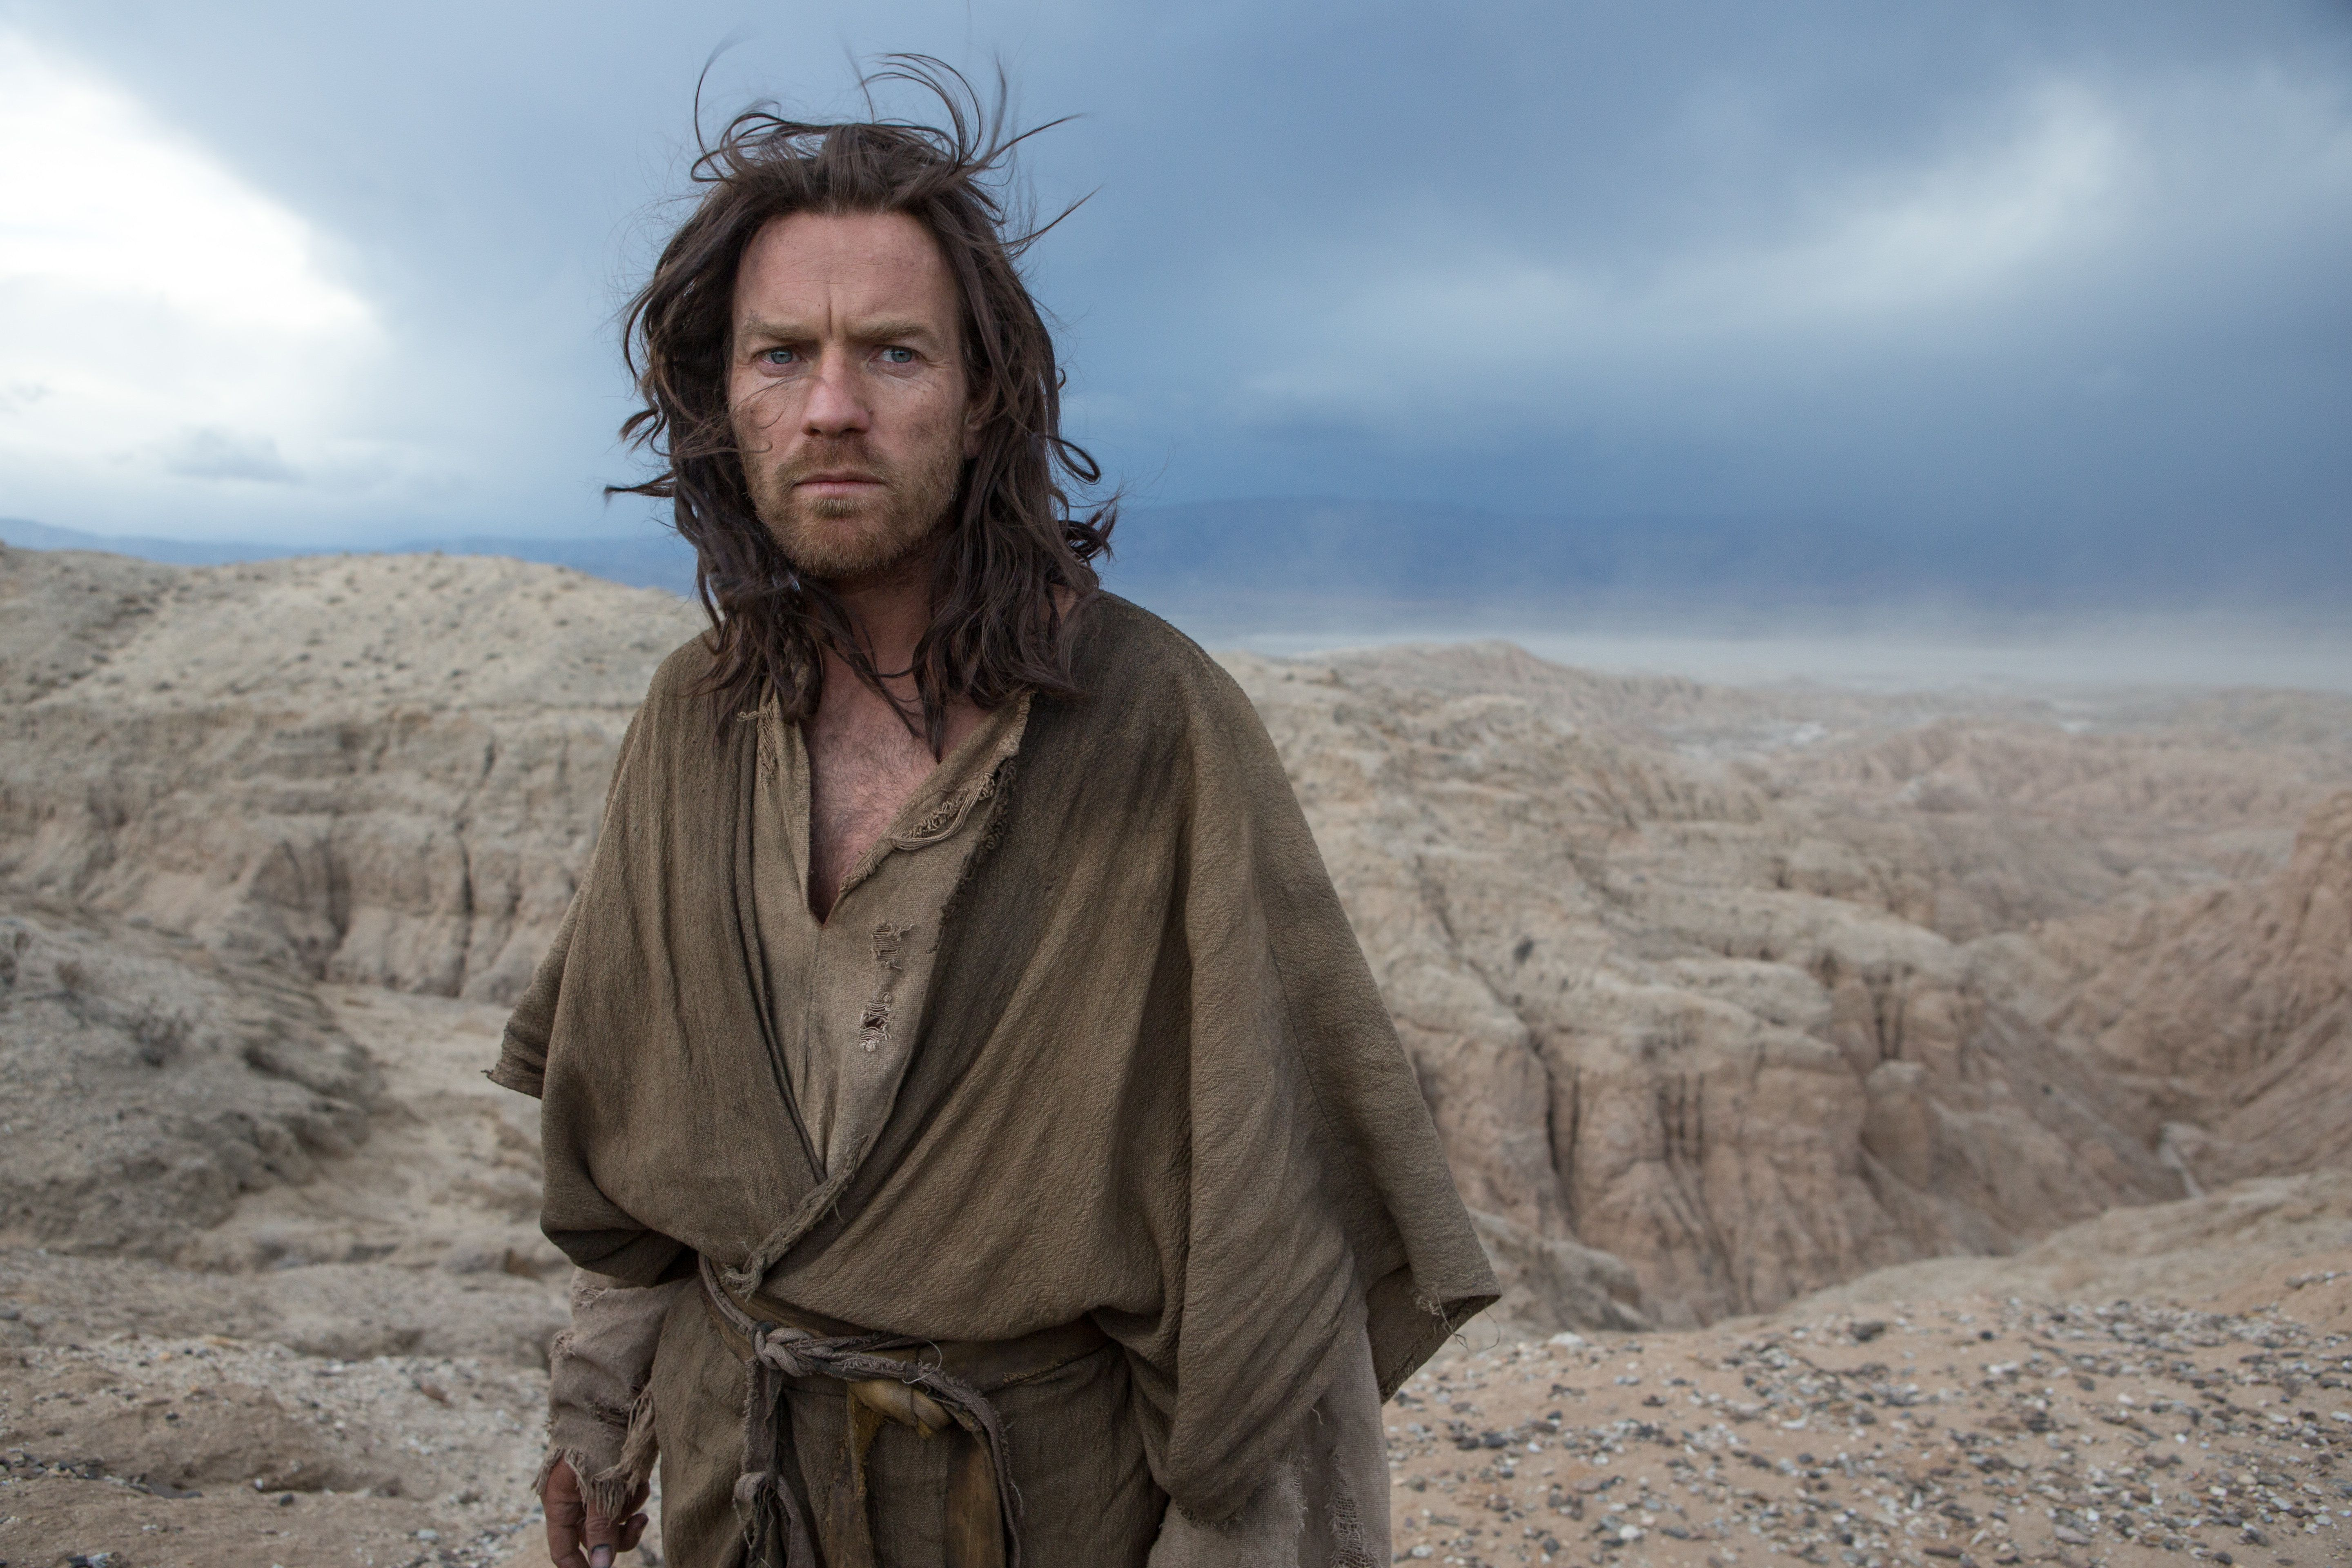 LDD_03227 